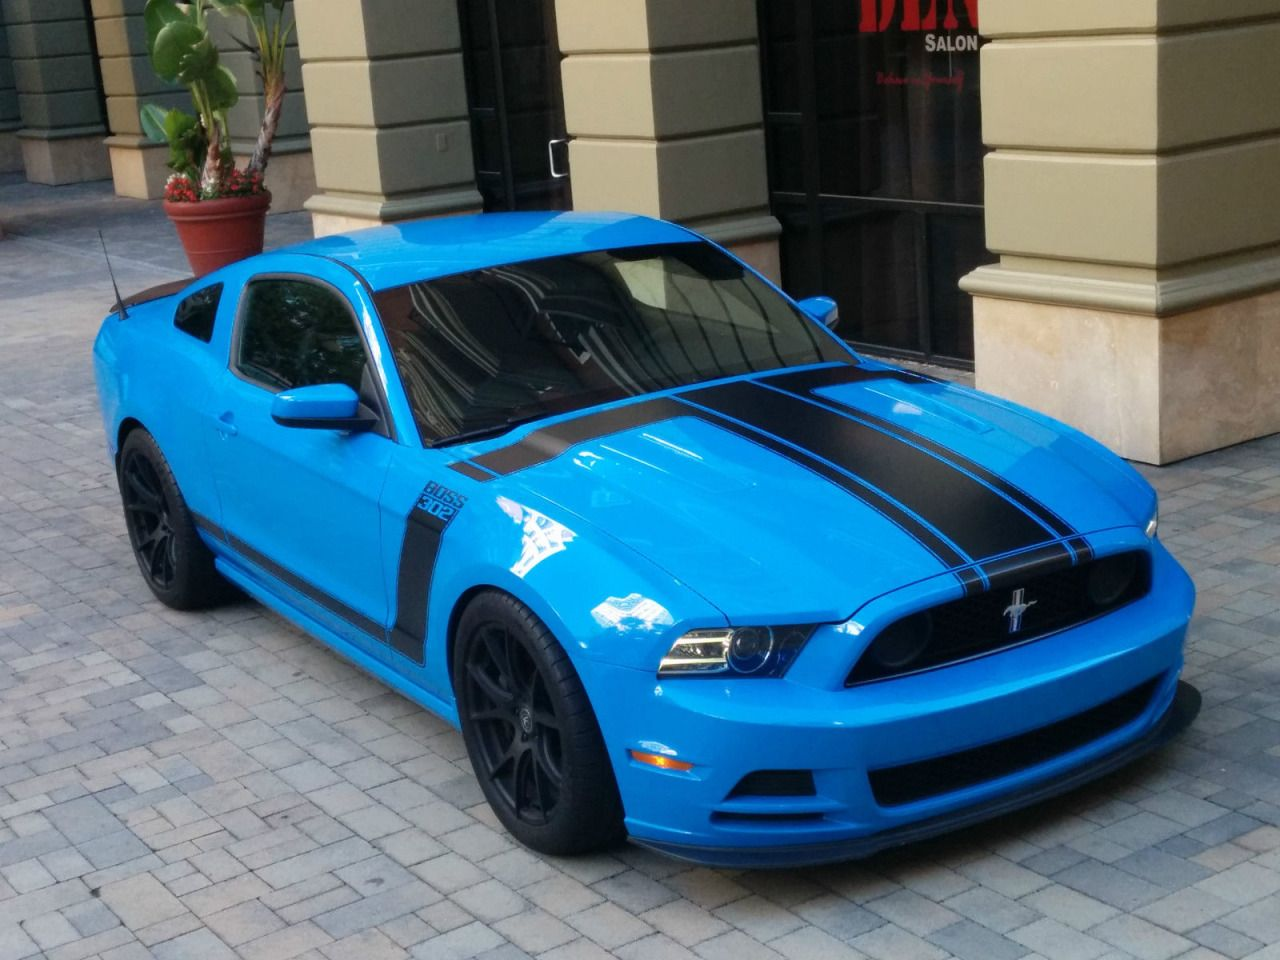 2013 ford mustang boss 302 grabber bluev8 5 0l 4951cc 302cu in v8 gas dohc naturally aspirated the car is fully optioned with the torsen limited slip